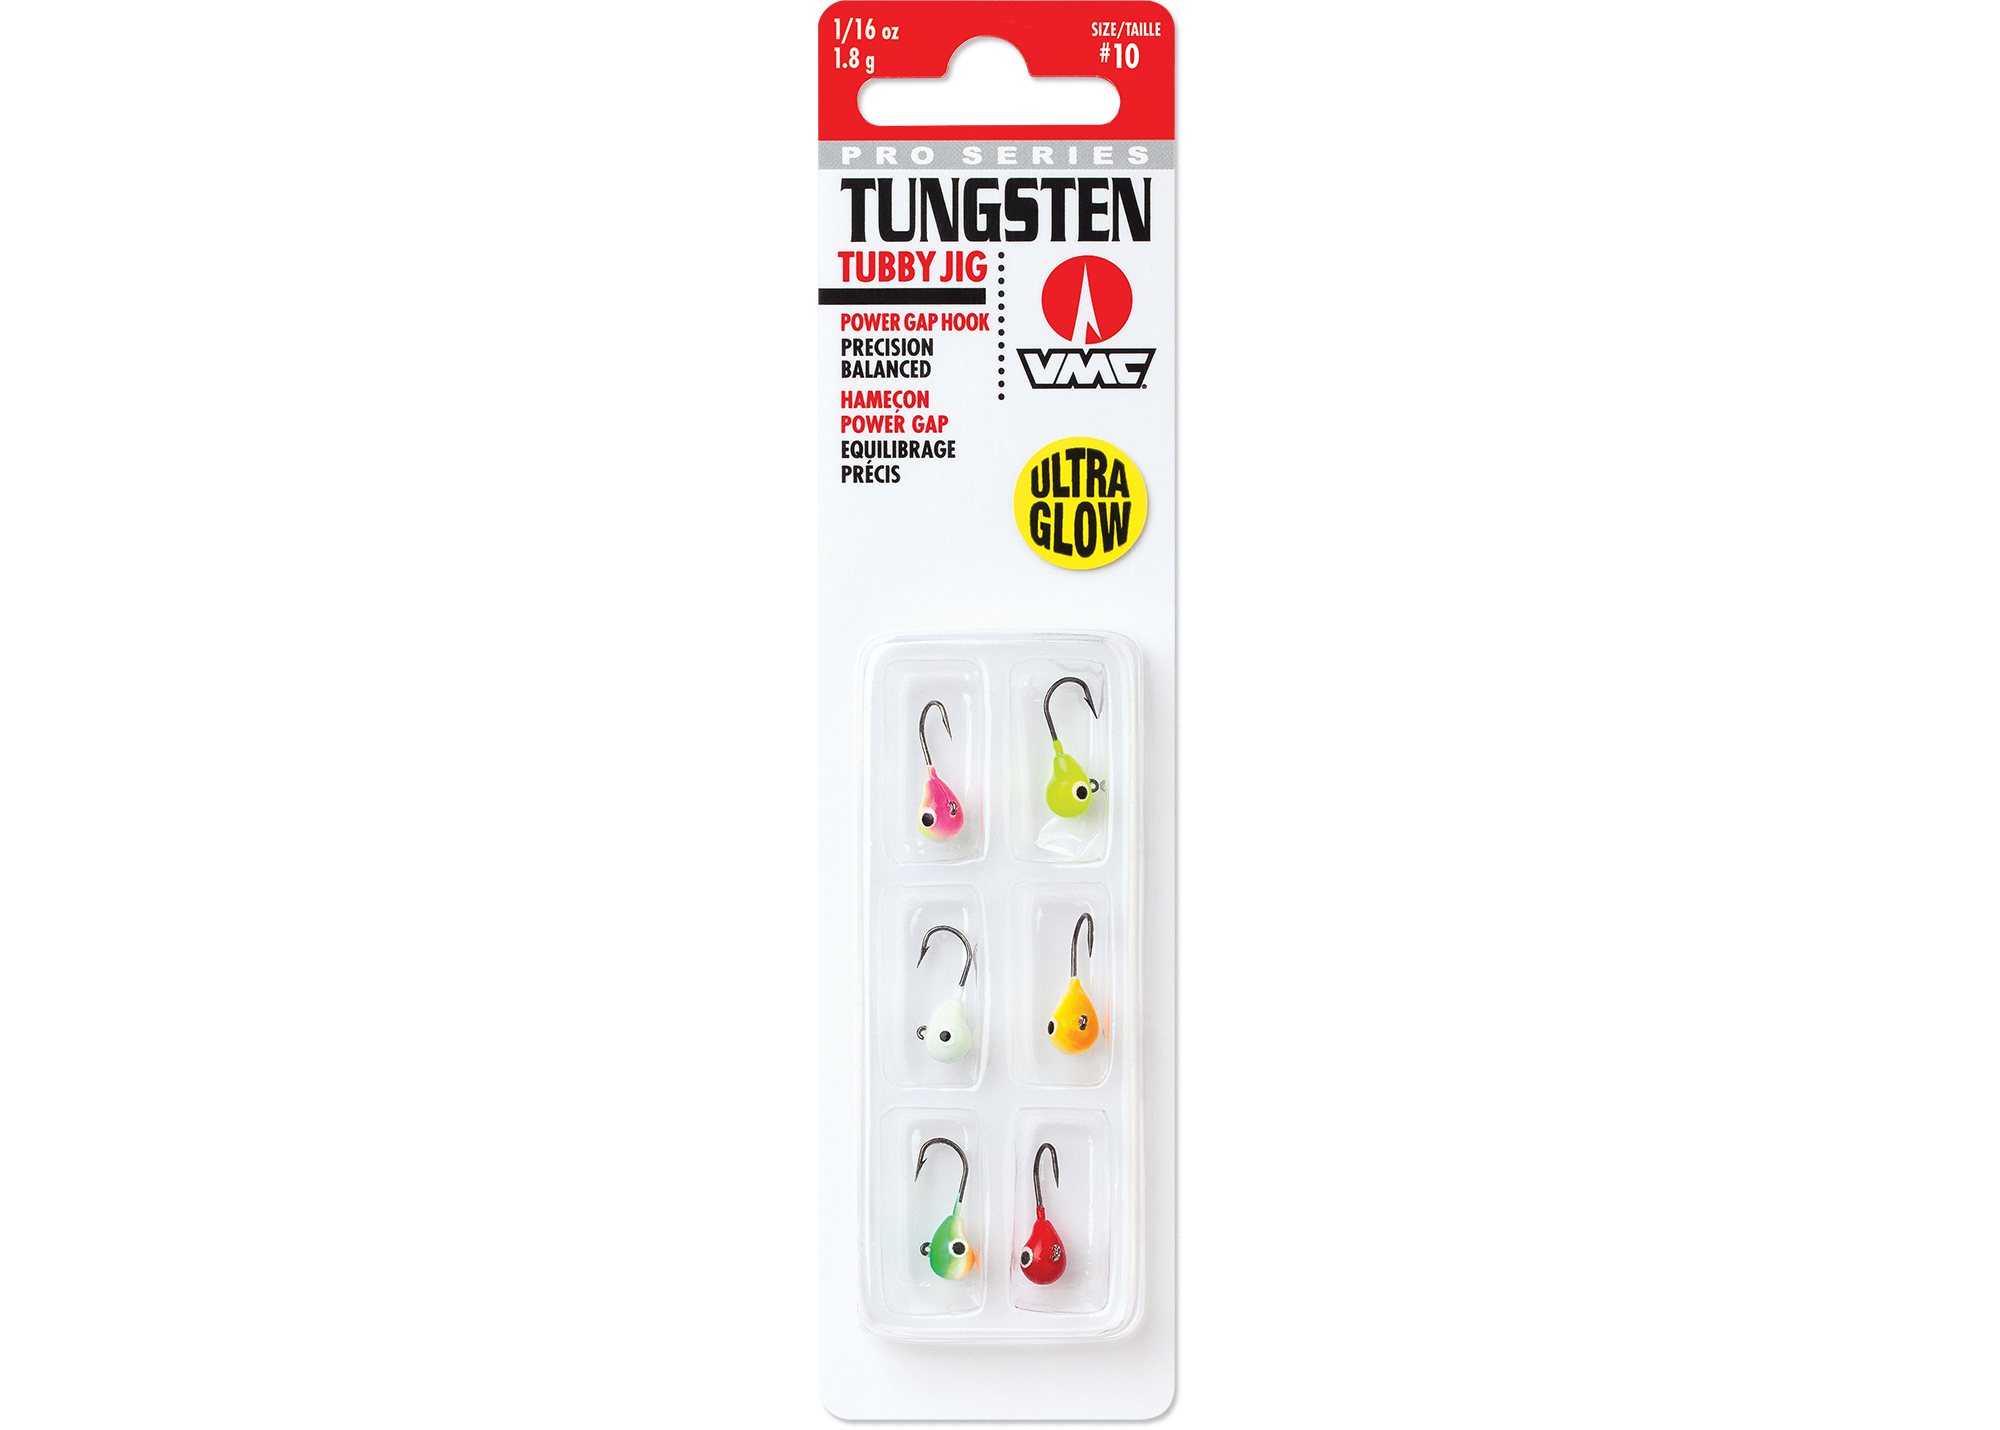 Tungsten Tubby Jig Kit